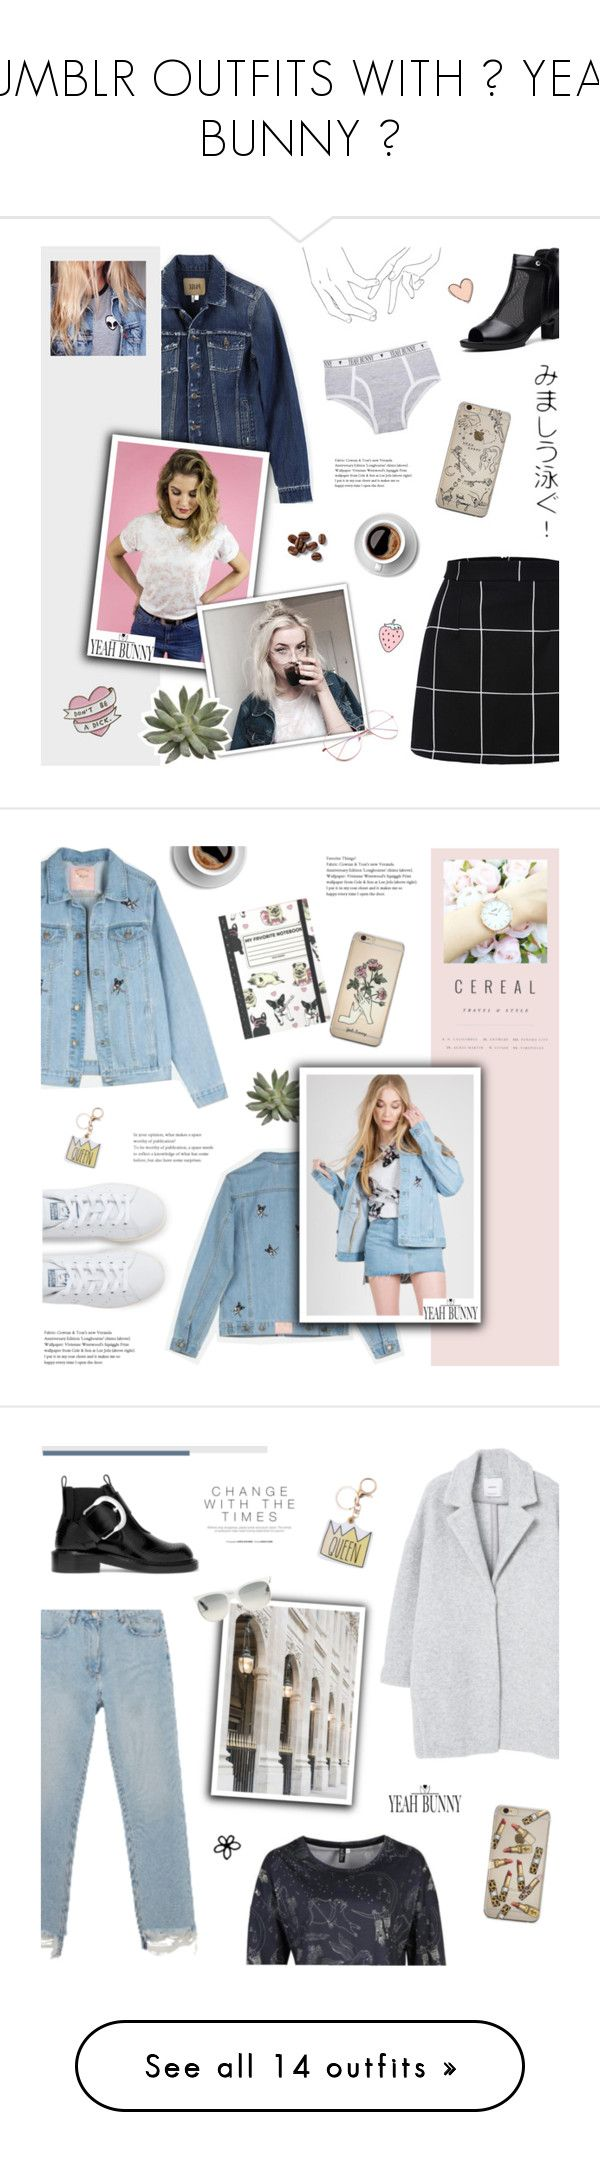 """""""TUMBLR OUTFITS WITH 🐰 YEAH BUNNY 🐰"""" by paradiselemonade ❤ liked on Polyvore featuring Paige Denim, Yeah Bunny, tumblr, YeahBunny, adidas, M.i.h Jeans, MANGO, Maison Margiela, Ray-Ban and HUGO"""